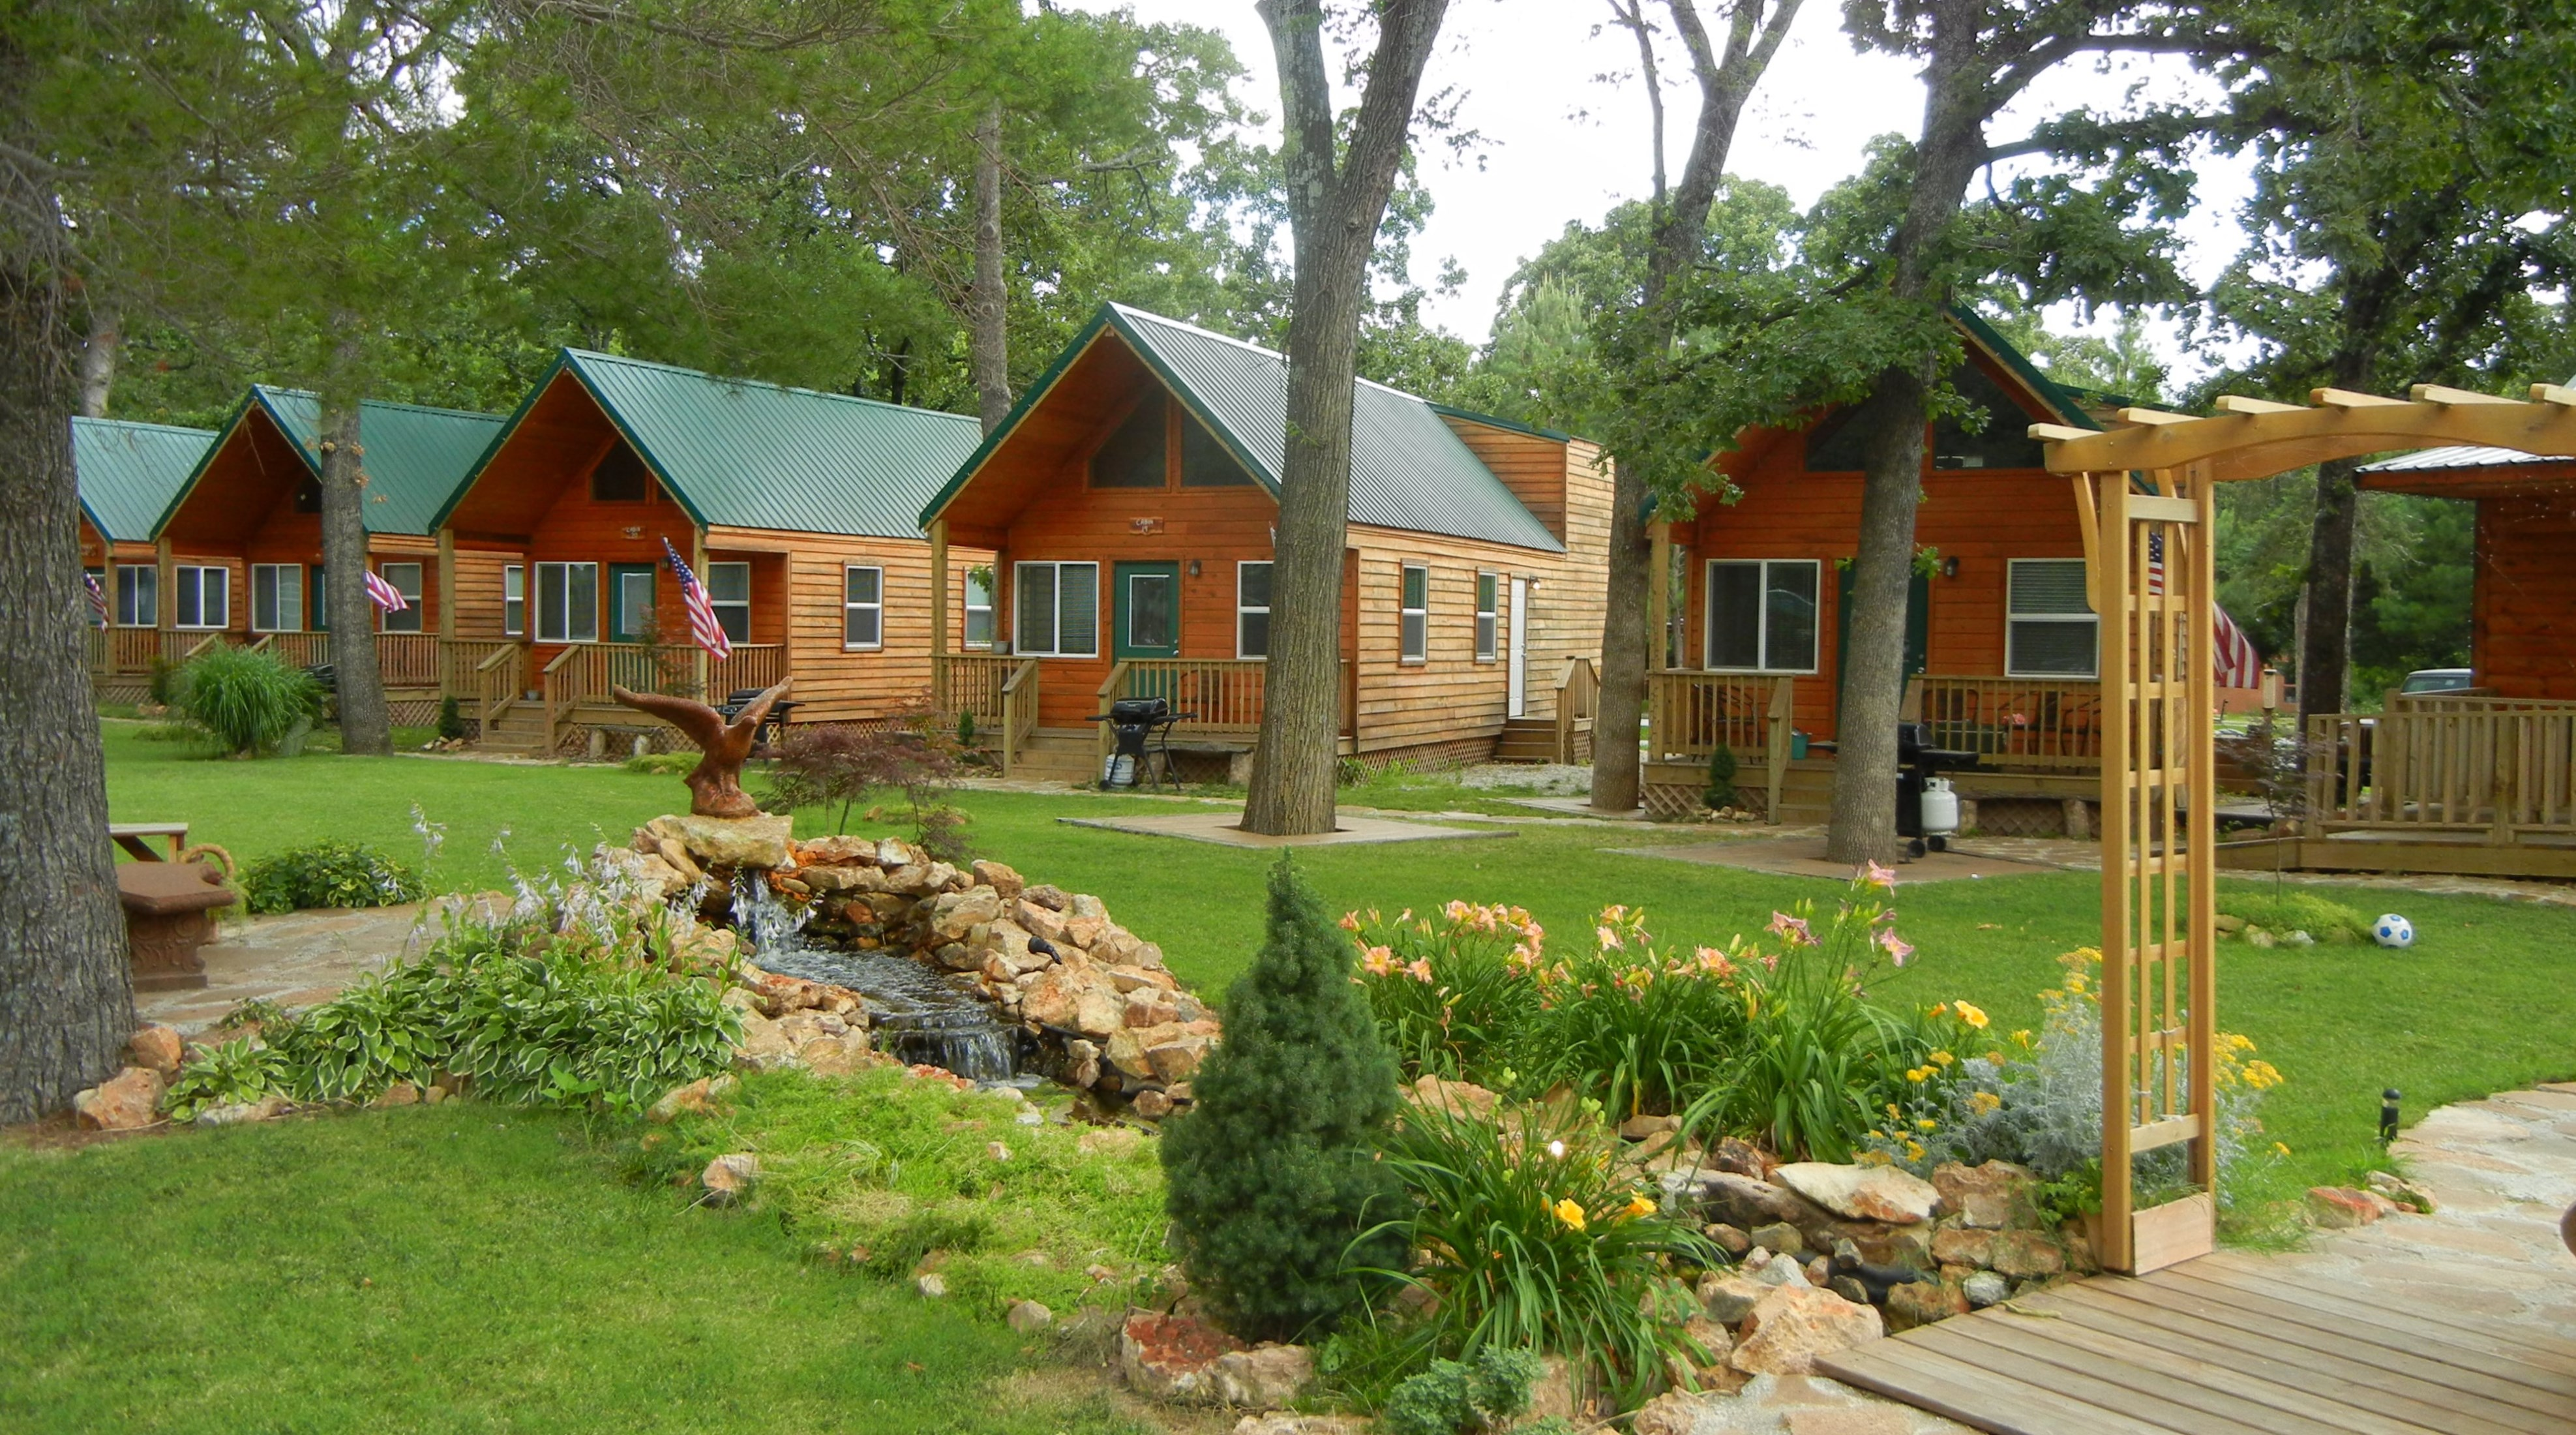 Grand Lake OK Cabin Rentals Hotel Motel Accommodations